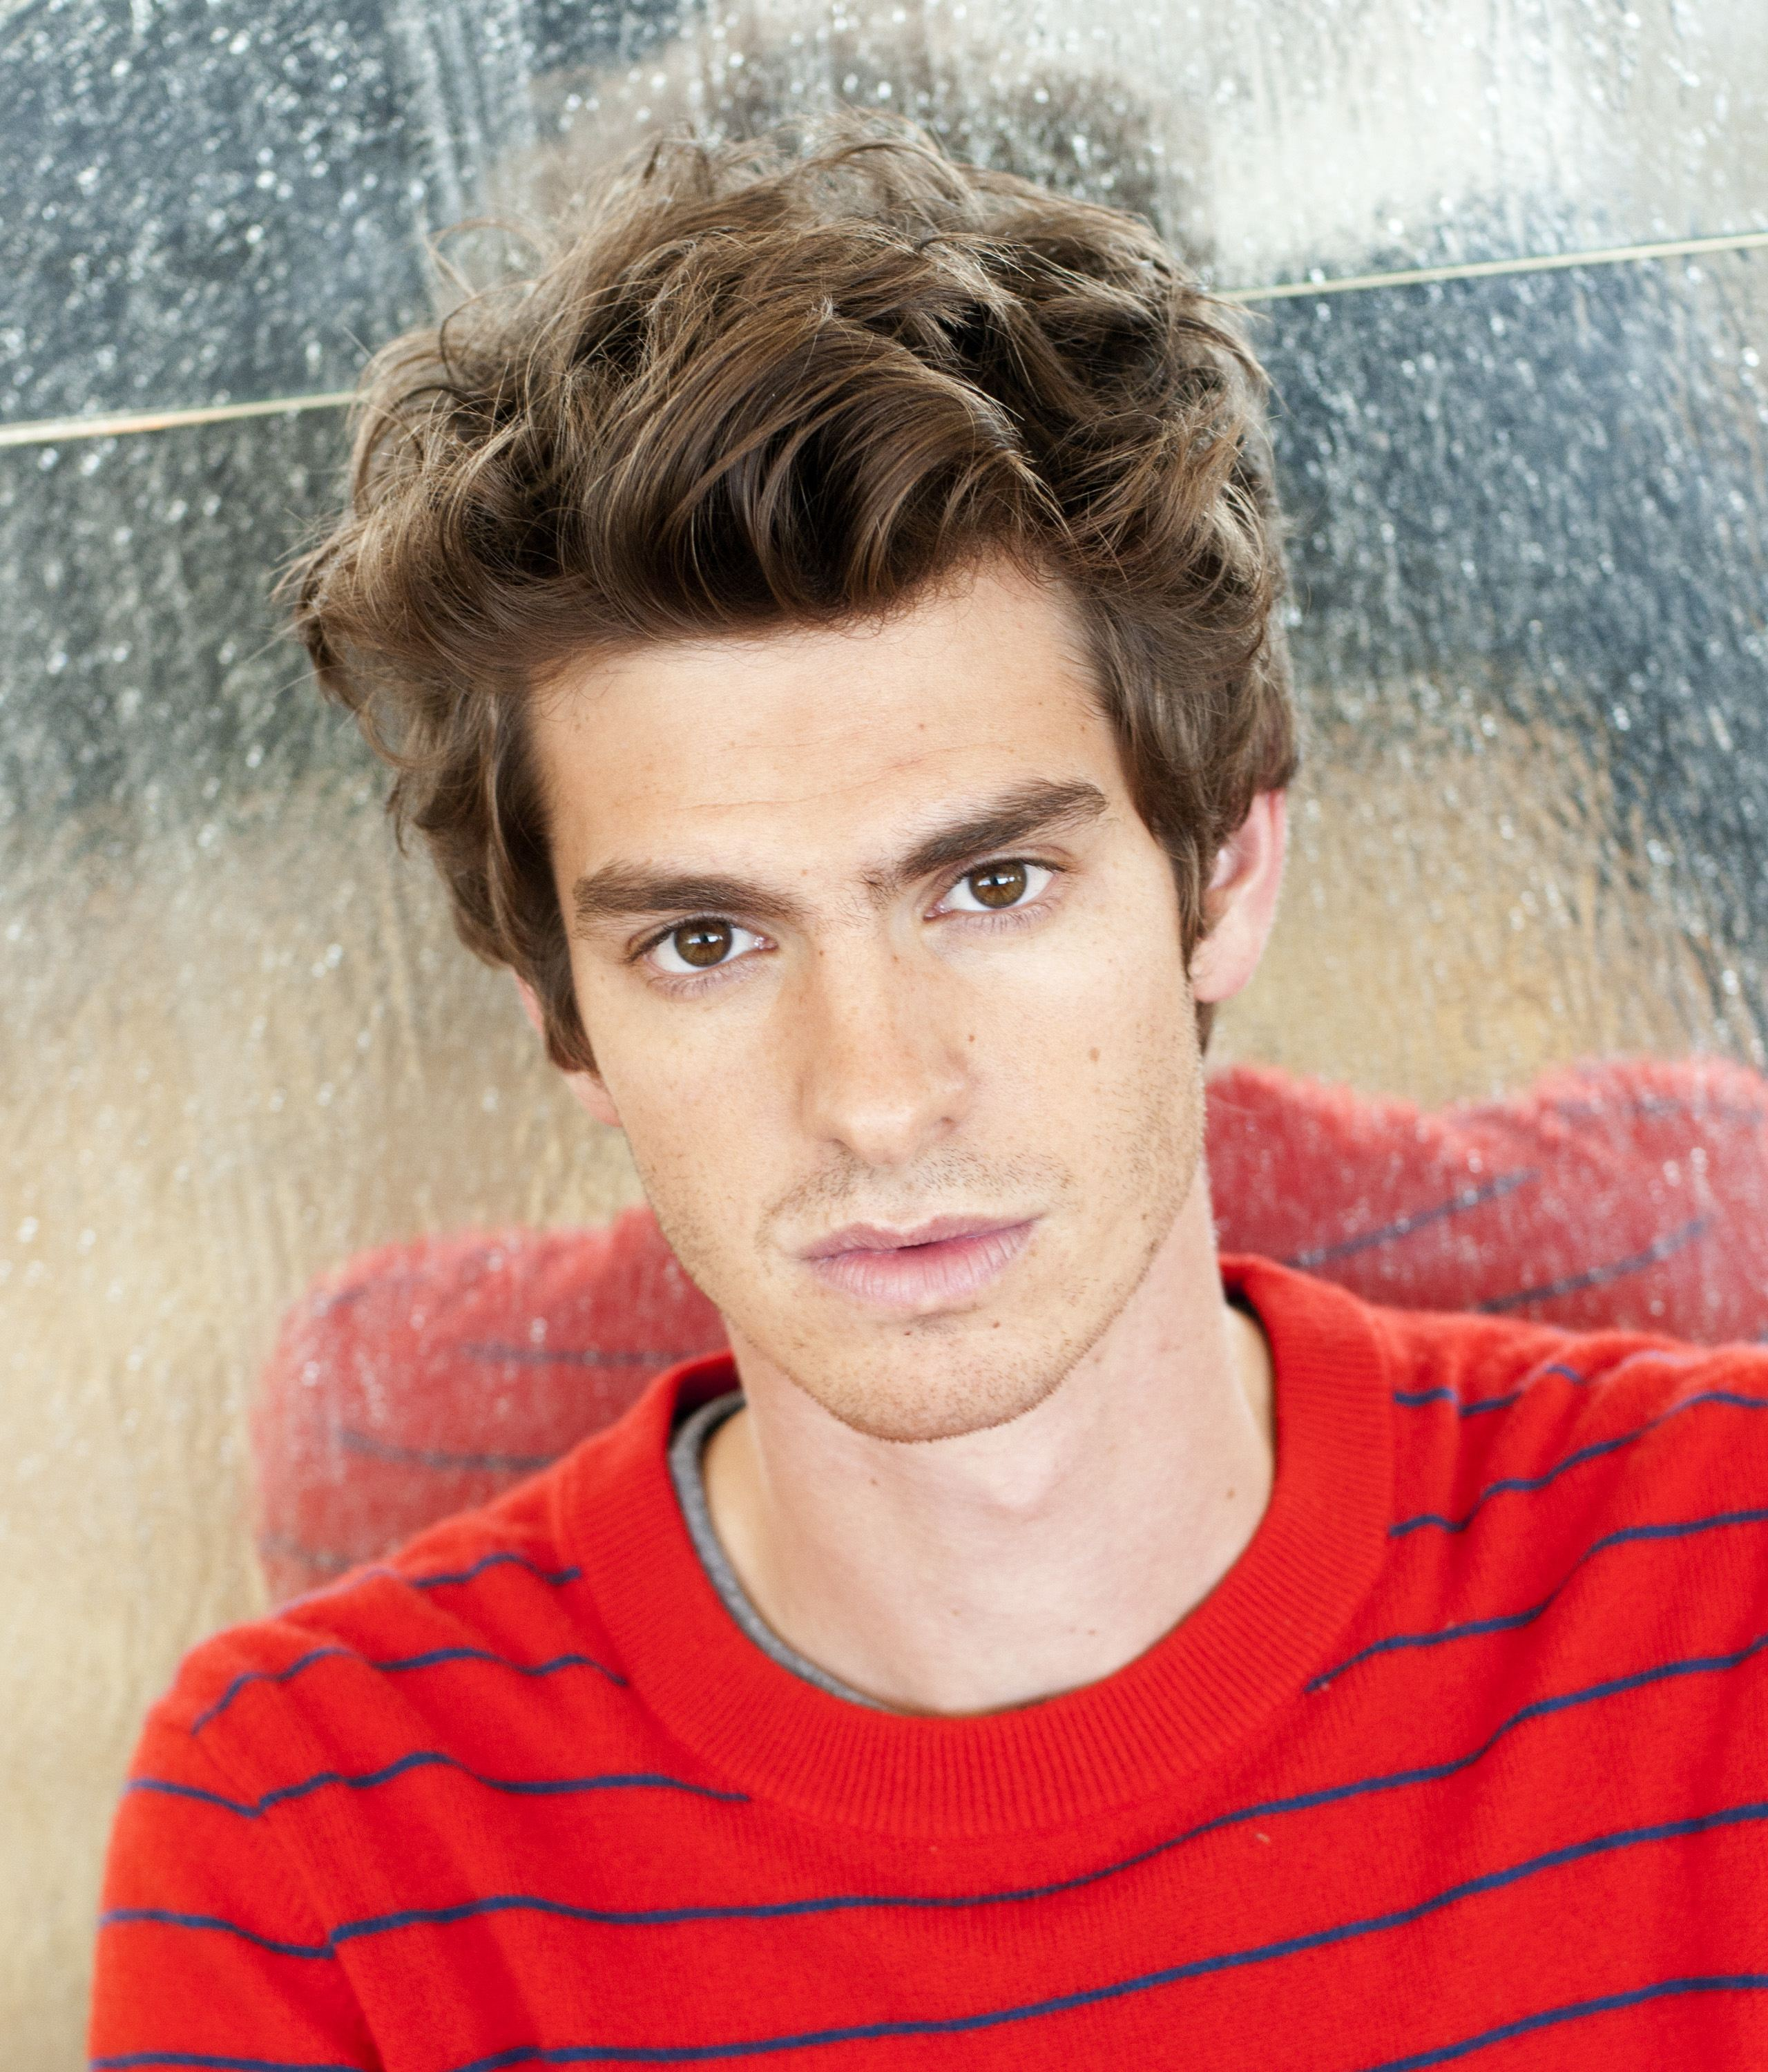 Andrew Garfield - Wiki The Amazing Spider-Pedia Andrew Garfield Wiki